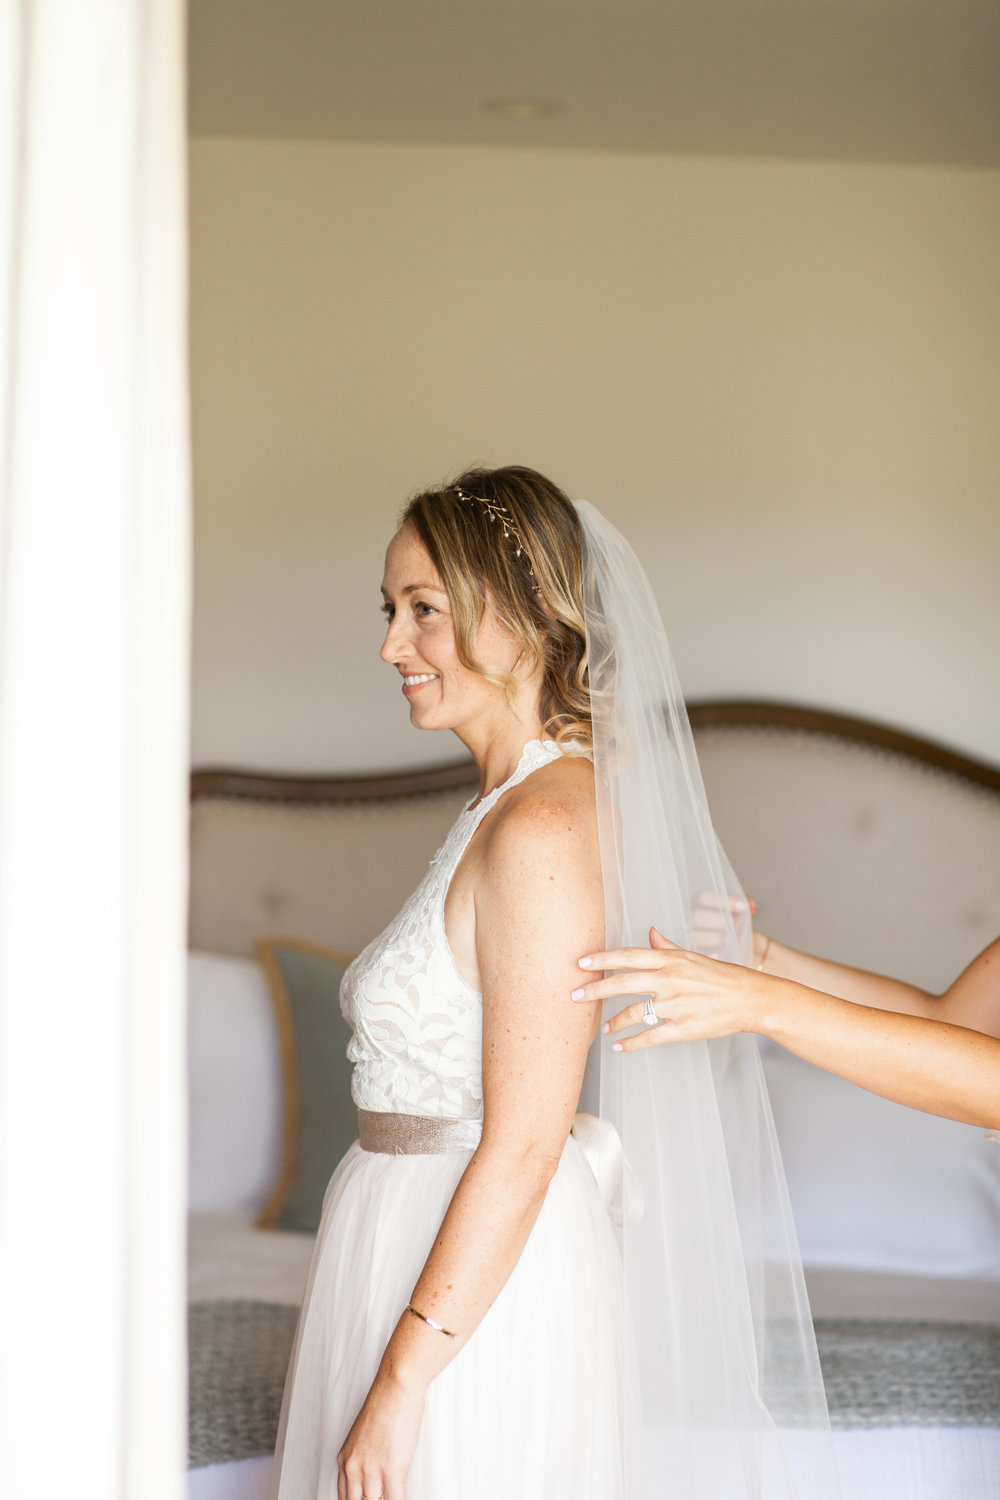 AllisonandScott'sApril2016Wedding-44.jpg